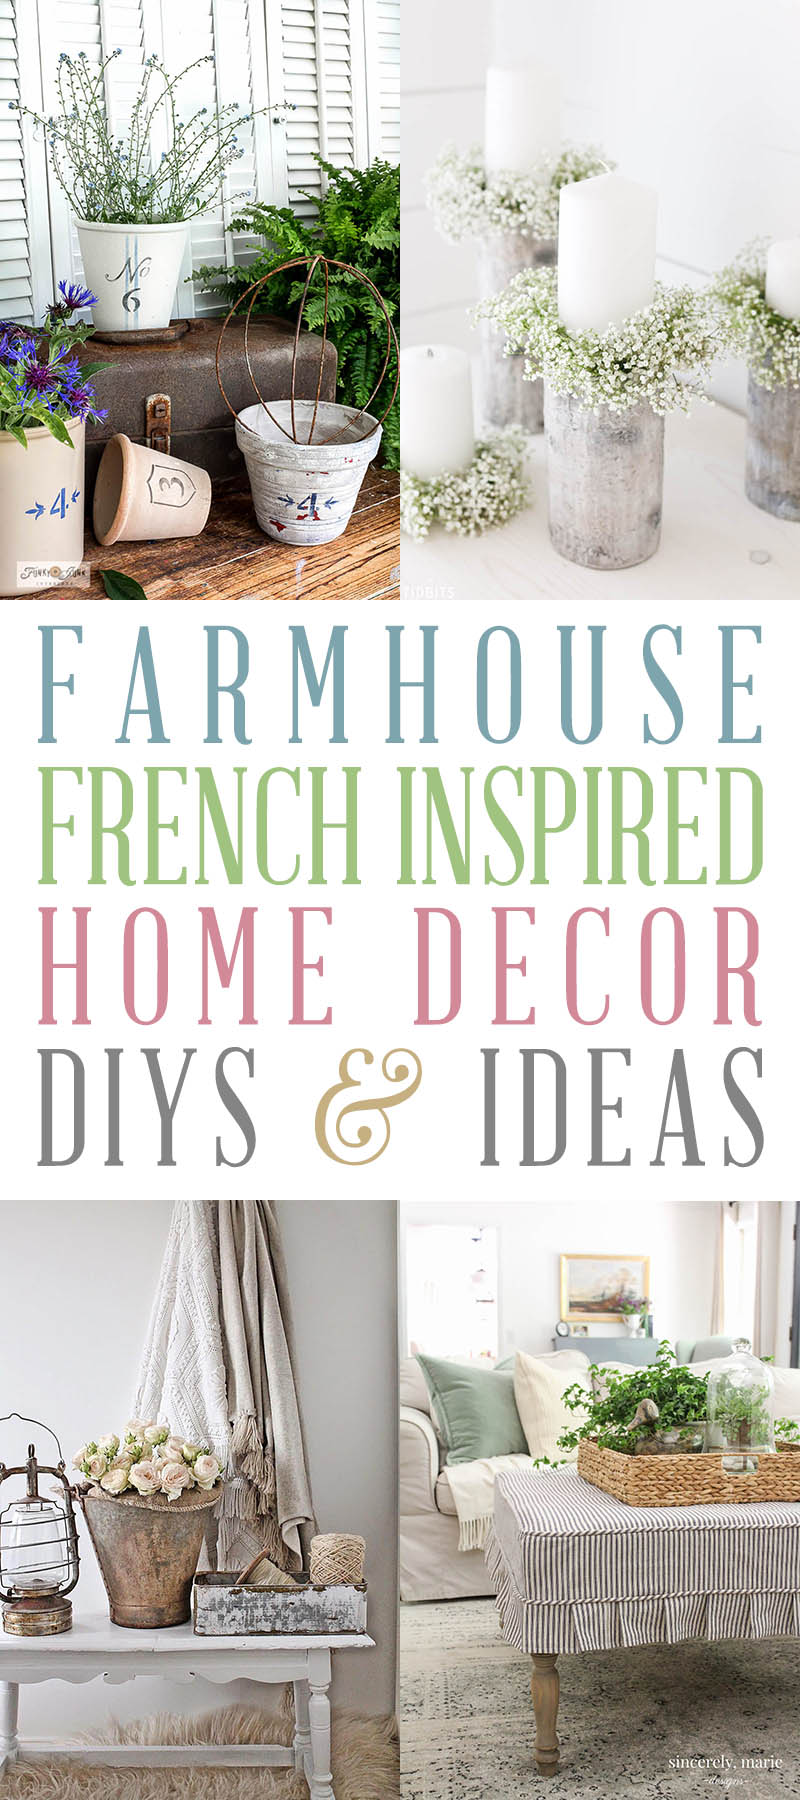 Farmhouse French Inspired Home Decor Ideas And Diys The Cottage Market